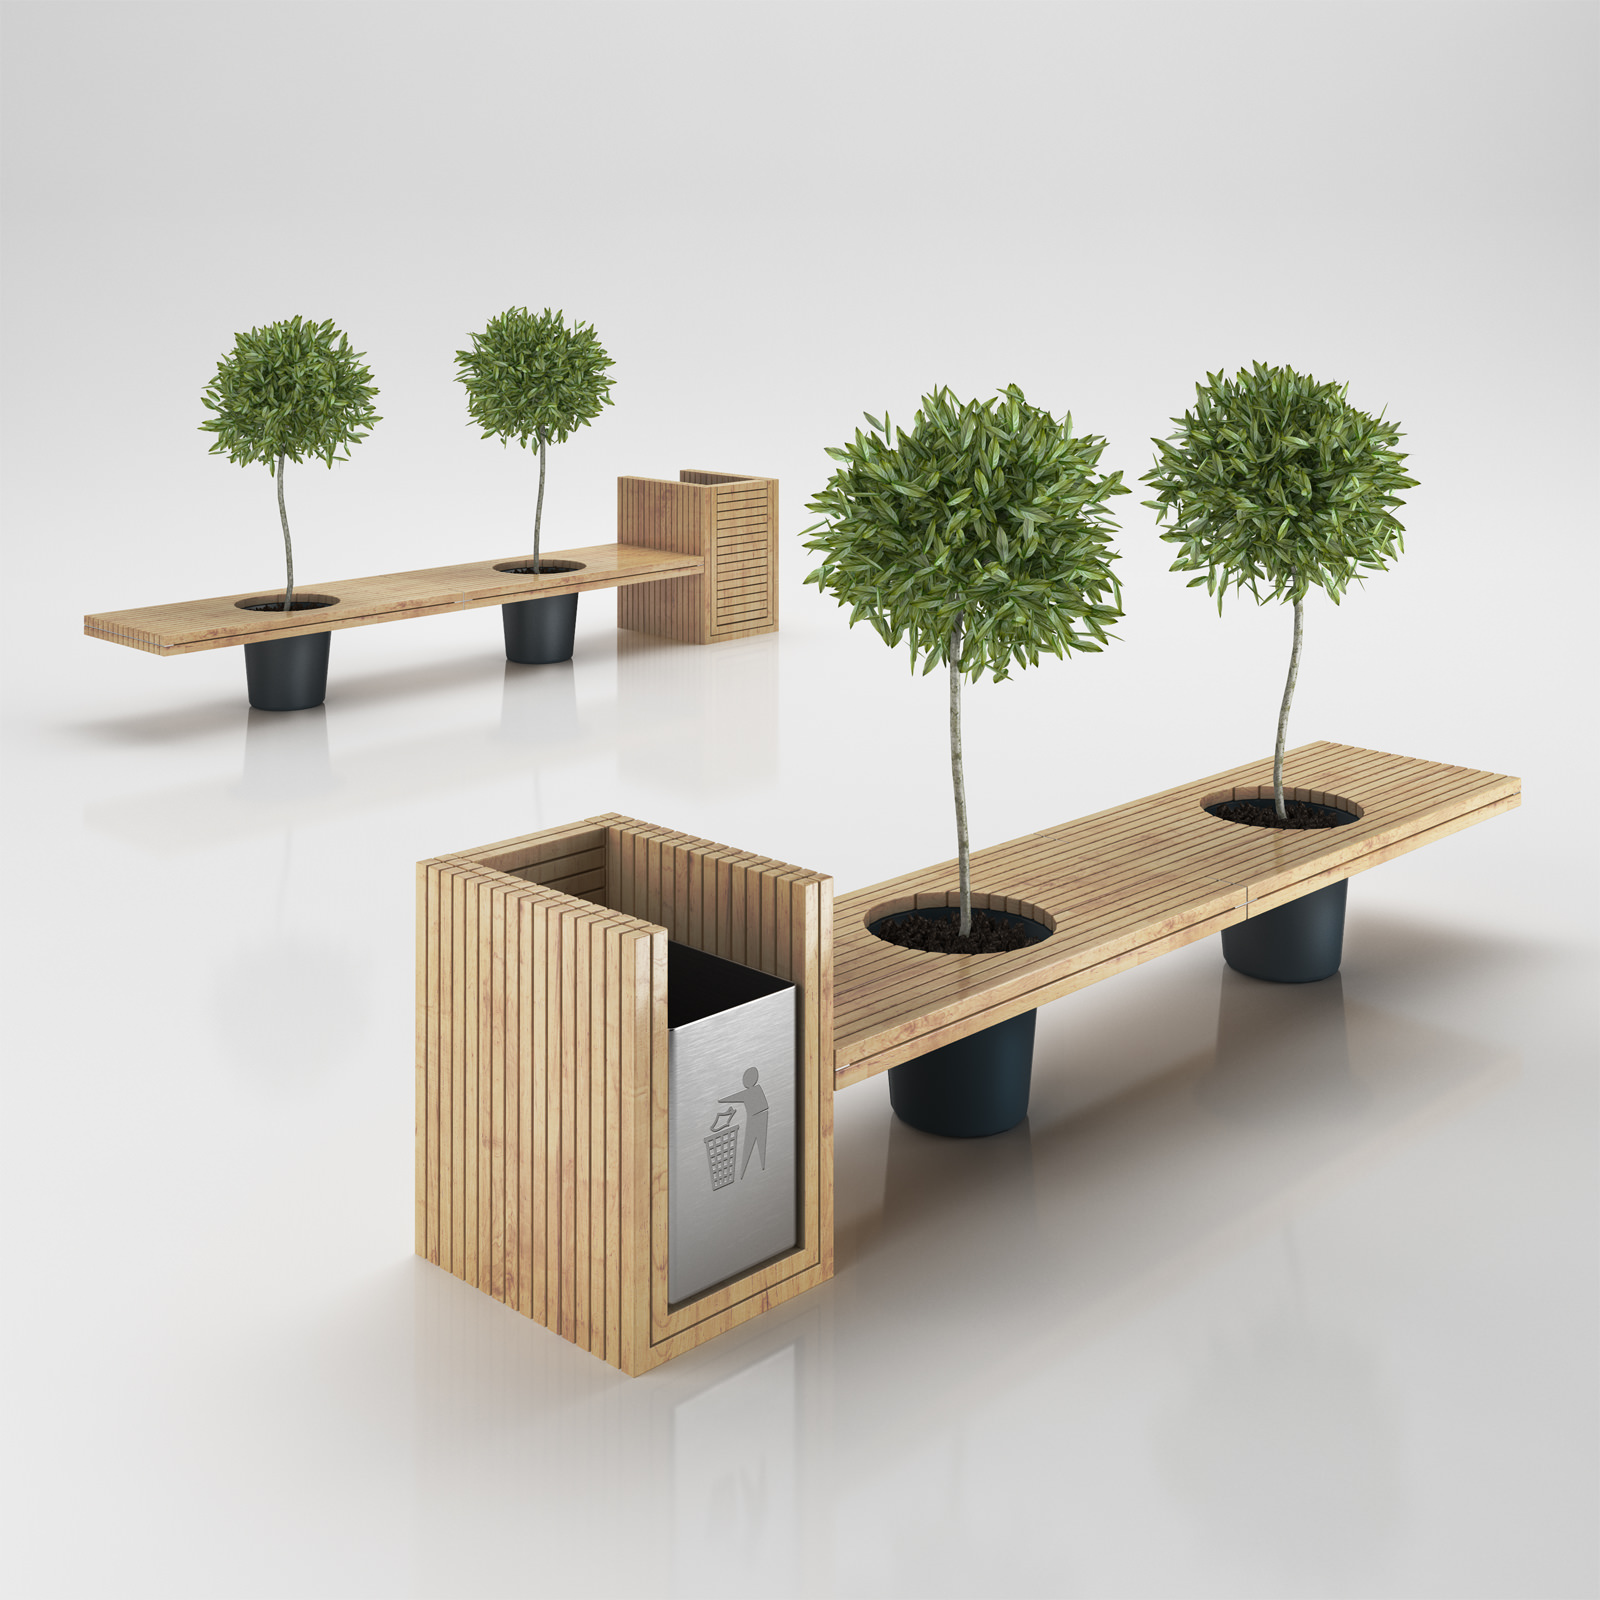 Wooden Eco Design Bench with Integrated Tr... 3D Model MAX OBJ 3DS C4D ...